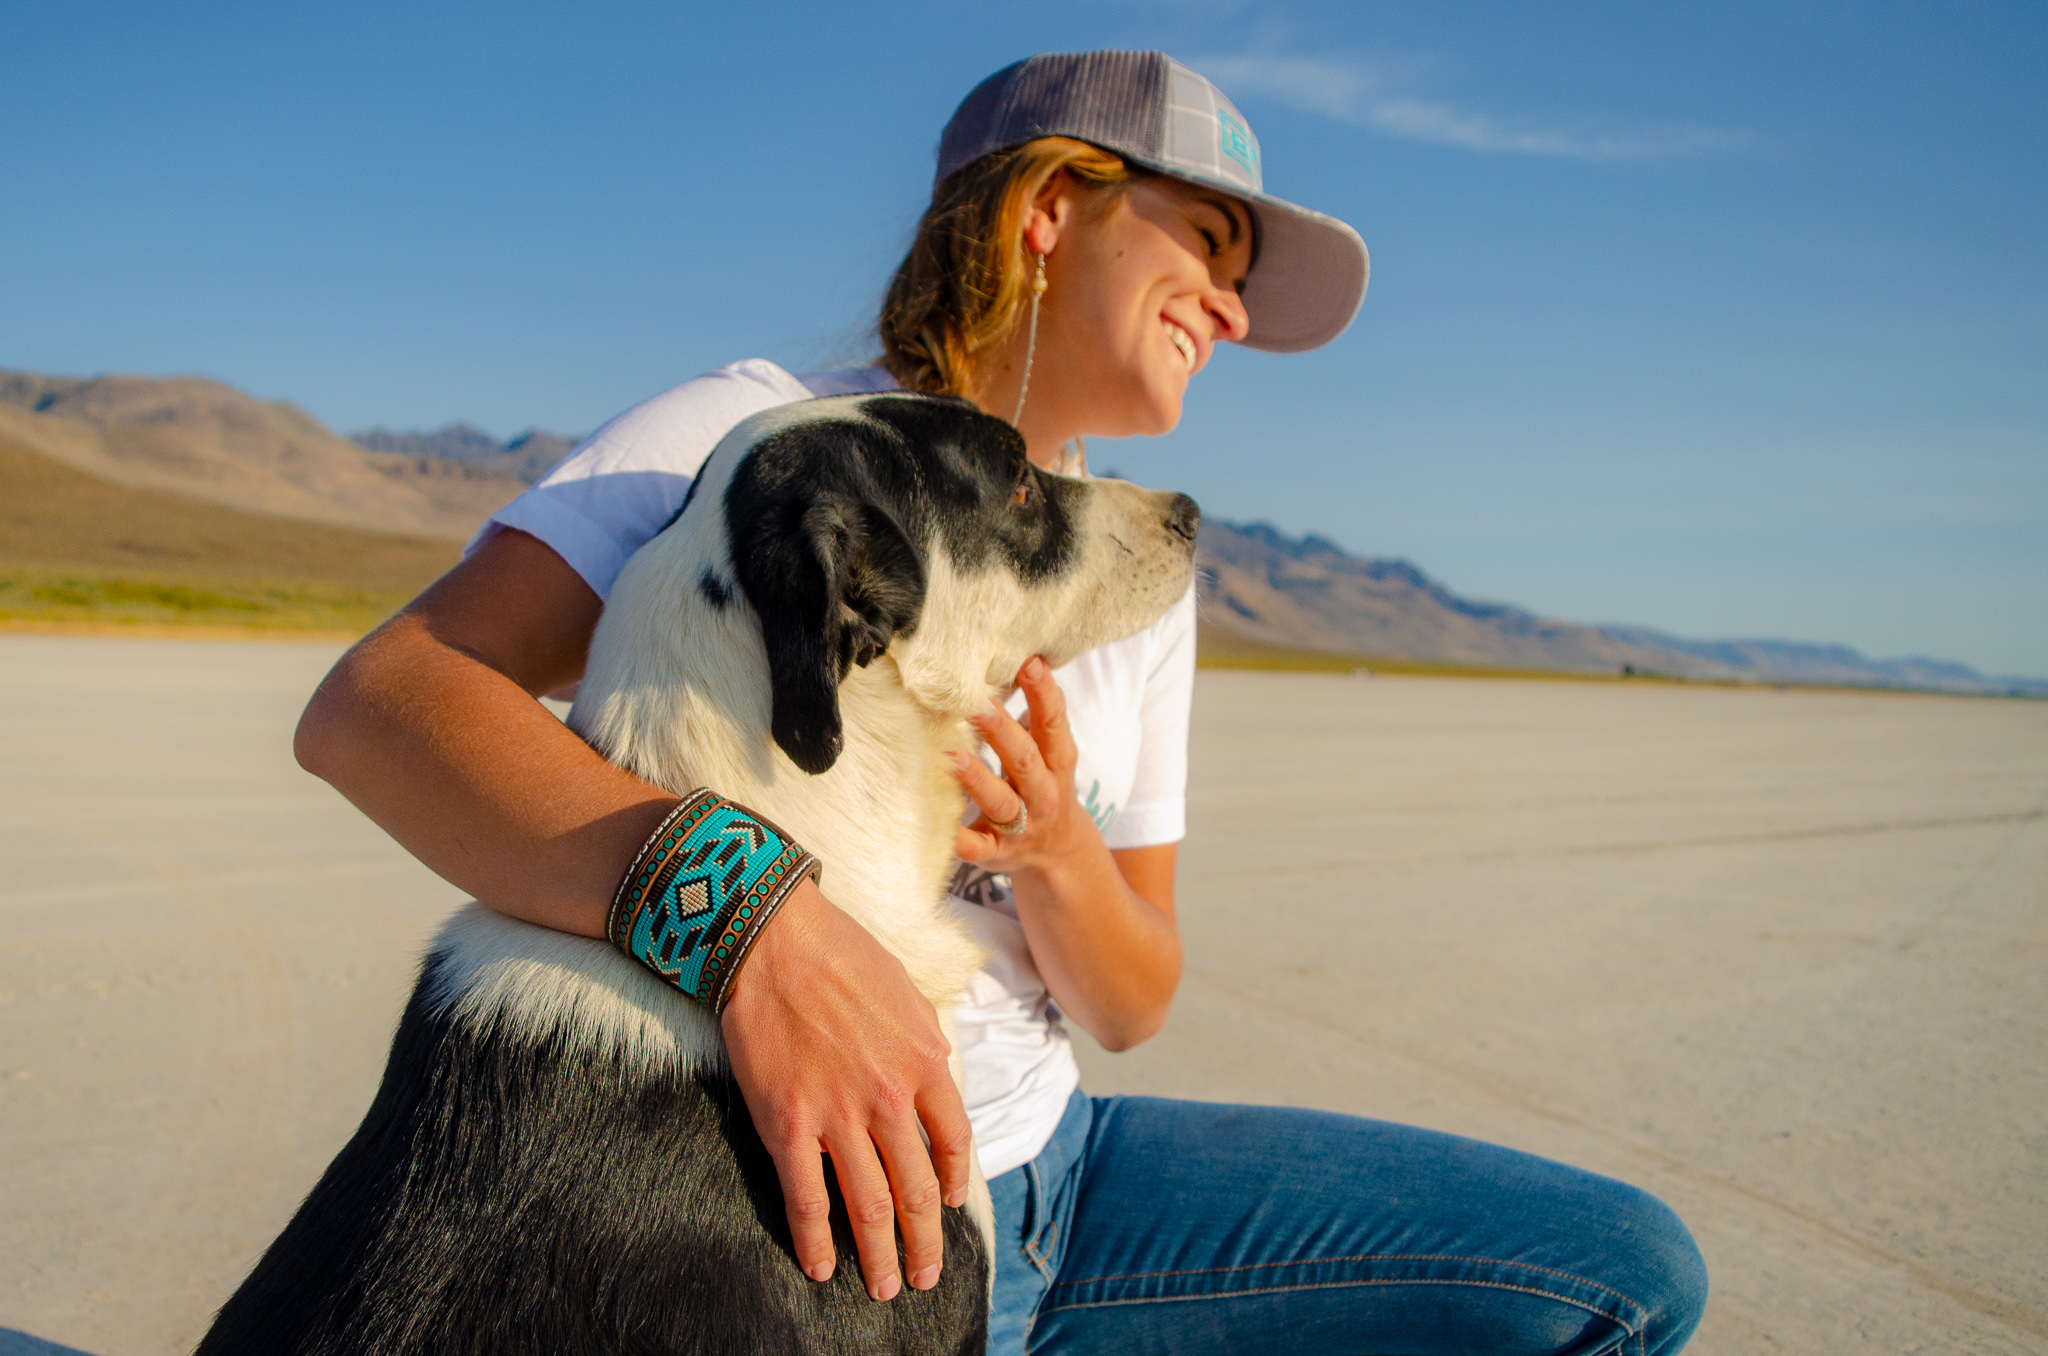 All the desert vibes on the Alvord with a girl, a little bead action and her dog.